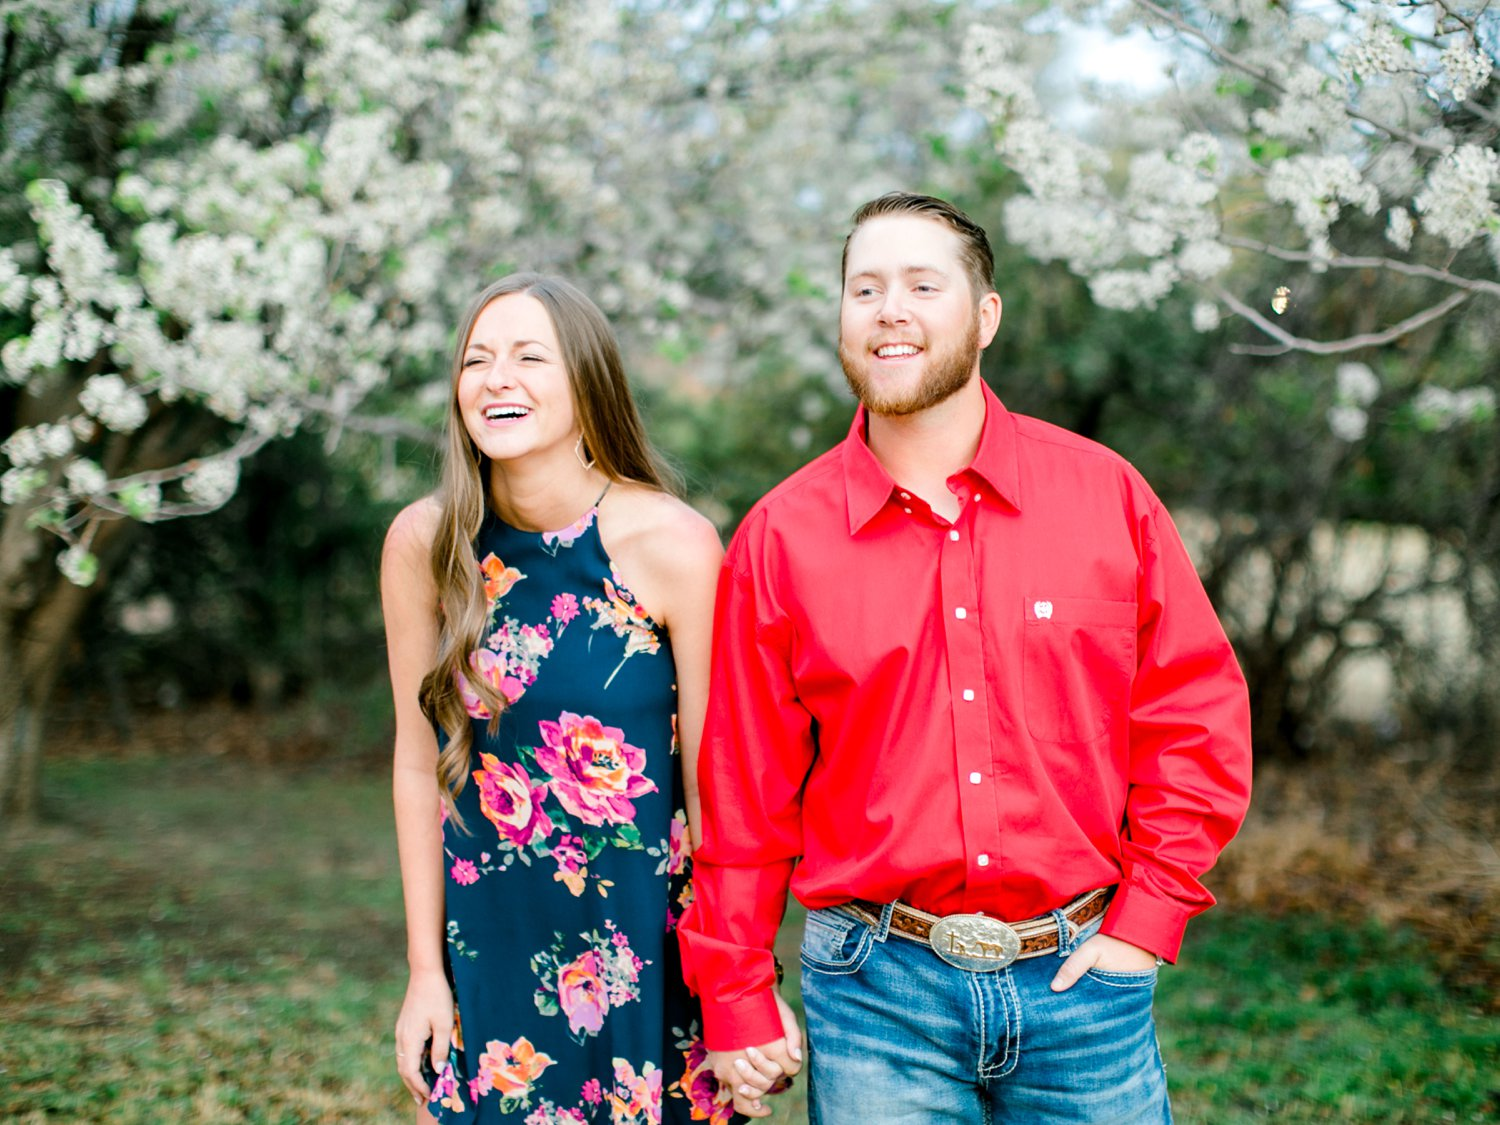 bailey-and-scotland-church-engagement-lubbock-photographer0002.jpg